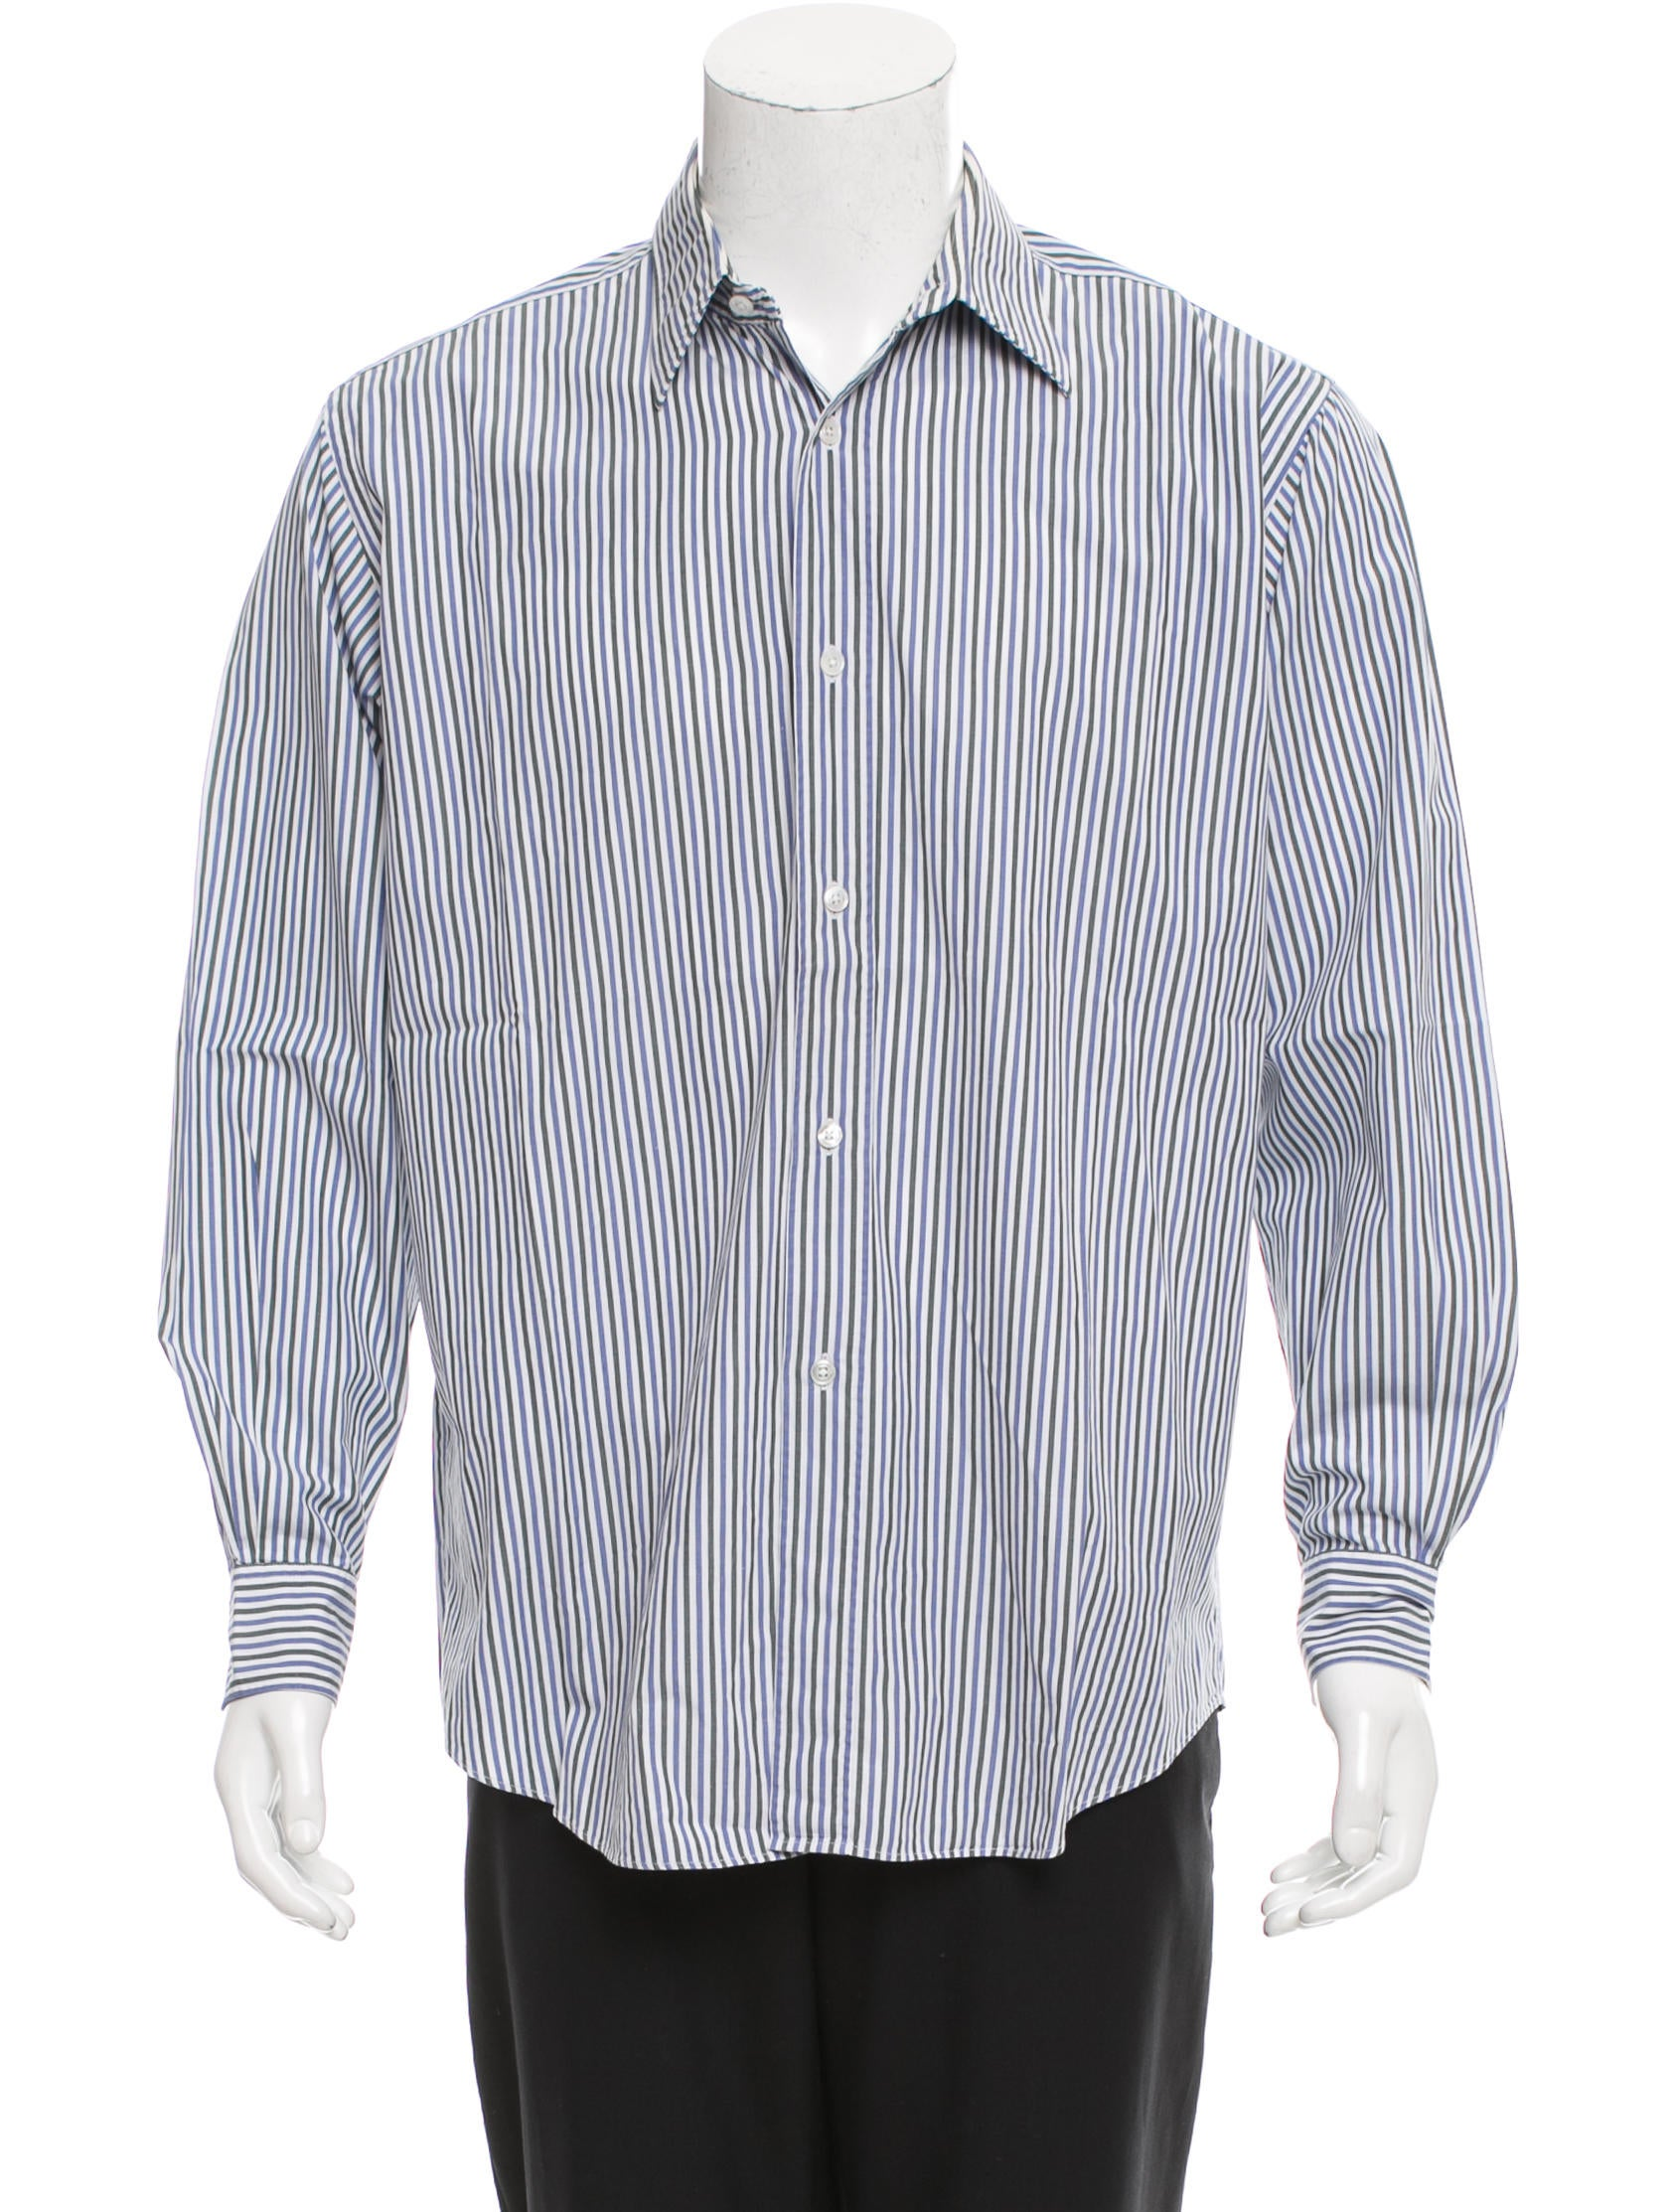 Herm s striped button up shirt clothing her103379 for Striped button up shirt mens